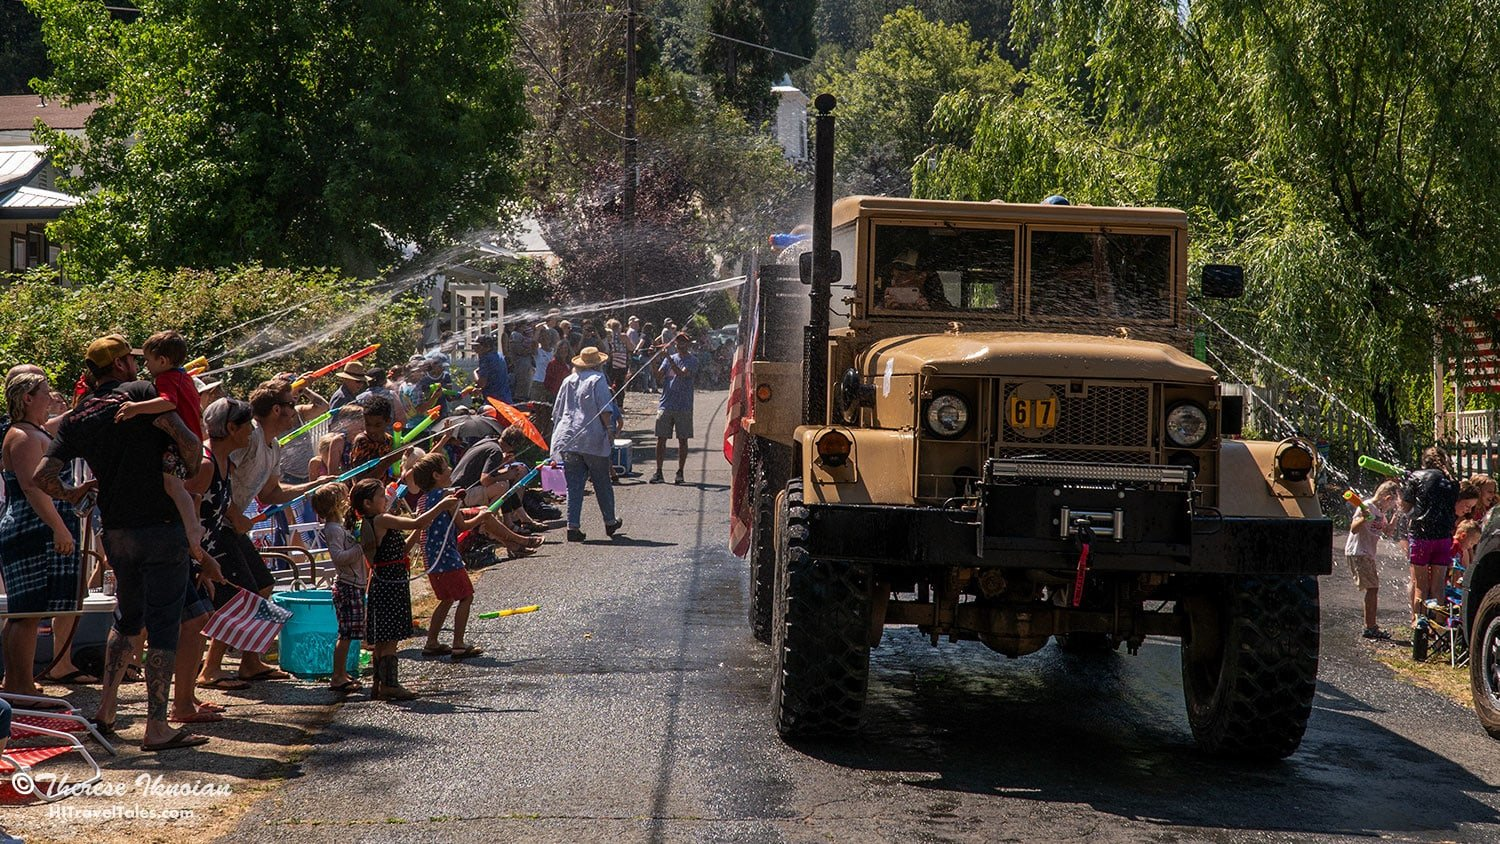 When you bring an old Army truck to the Dutch Flat 4th of July water fight, you know it's serious.